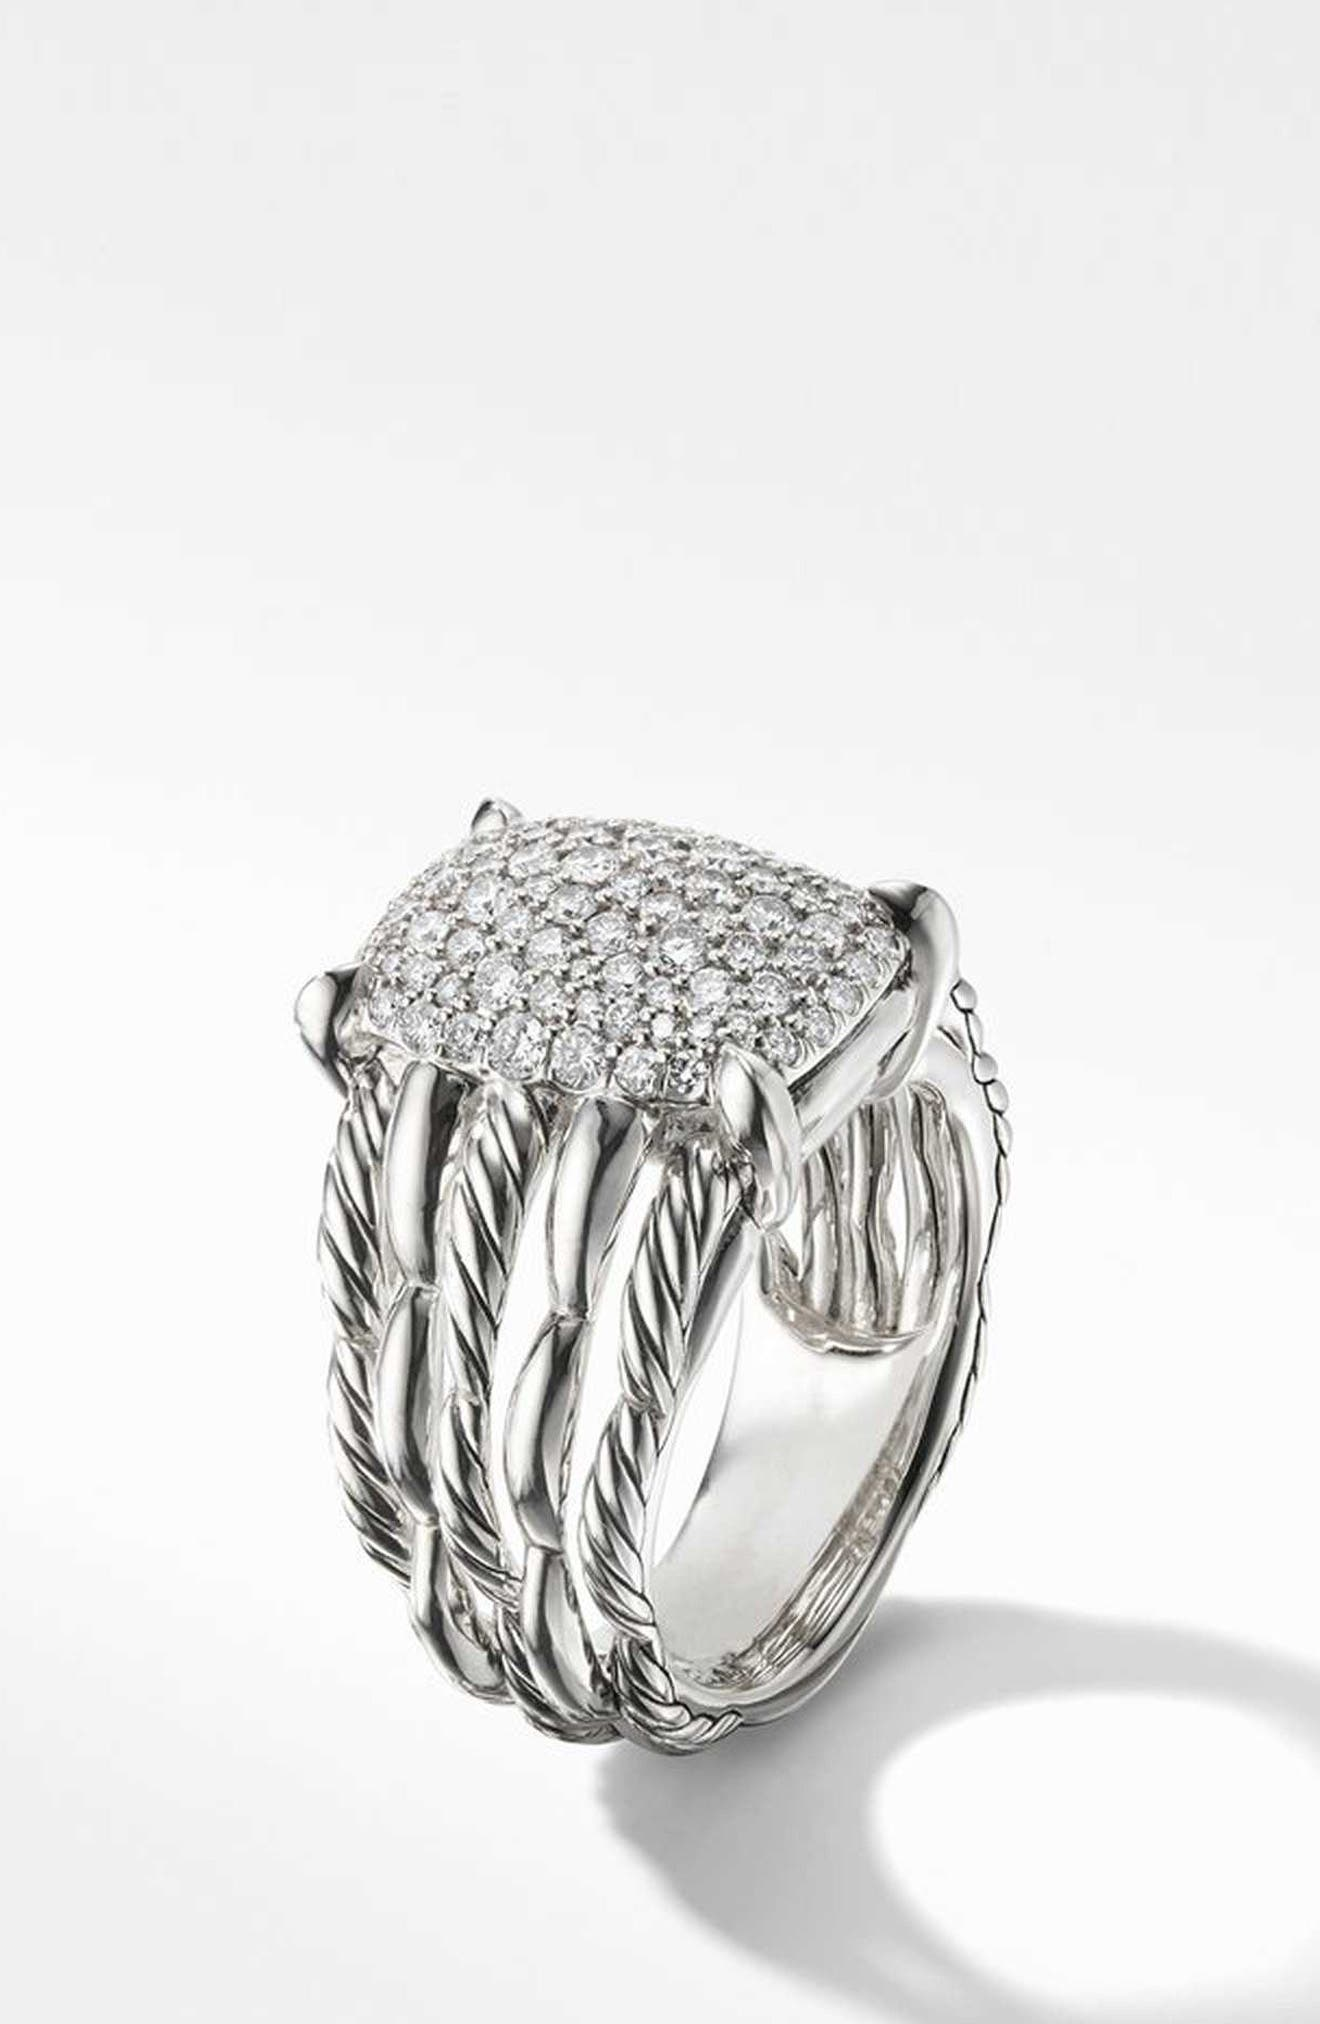 Tides Statement Ring with Pavé Diamond Plate,                             Alternate thumbnail 2, color,                             STERLING SILVER/ DIAMOND